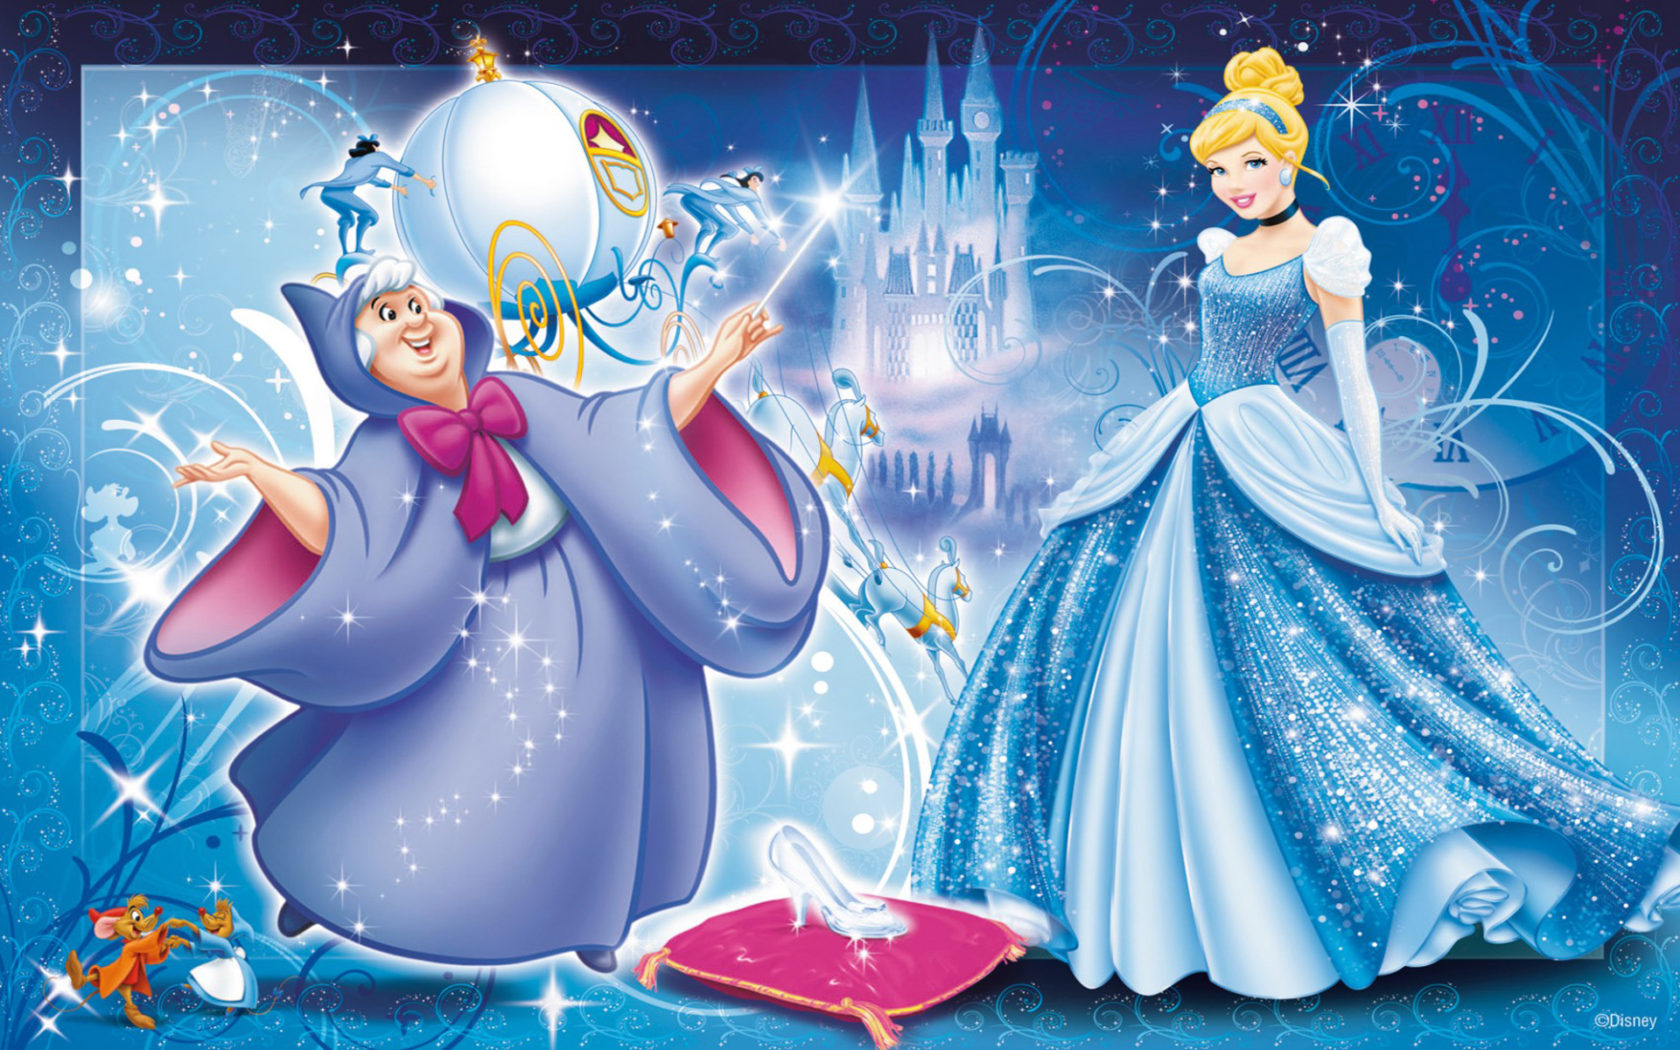 Water Animation Wallpaper Fairy Godmother Bows Magical Shoes On Cinderella Photo